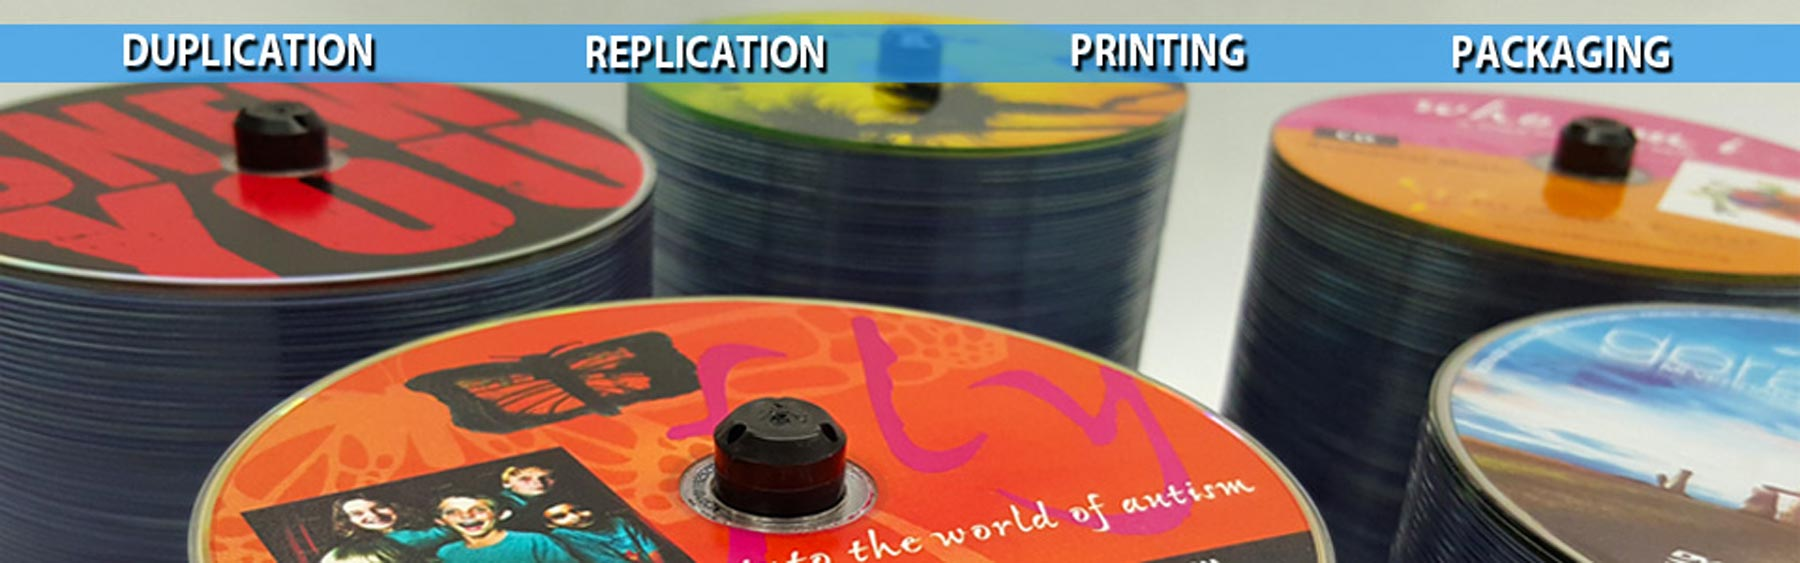 CD/DVD Duplication, Replication, Printing and Packaging